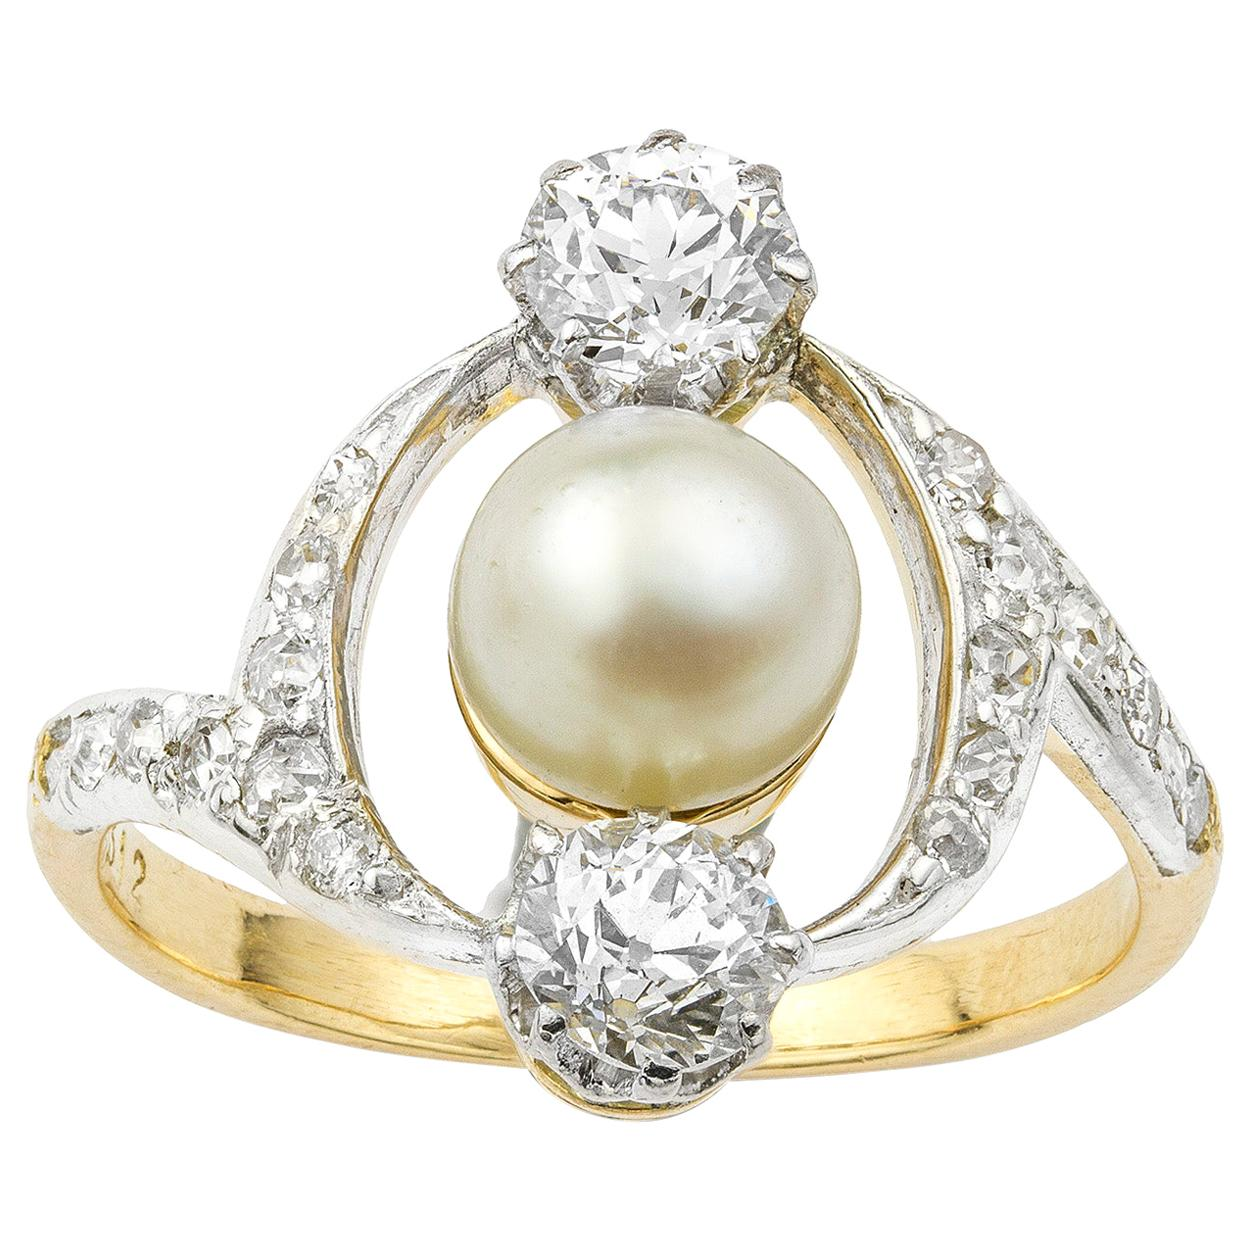 French Art Nouveau Pearl and Diamond Ring